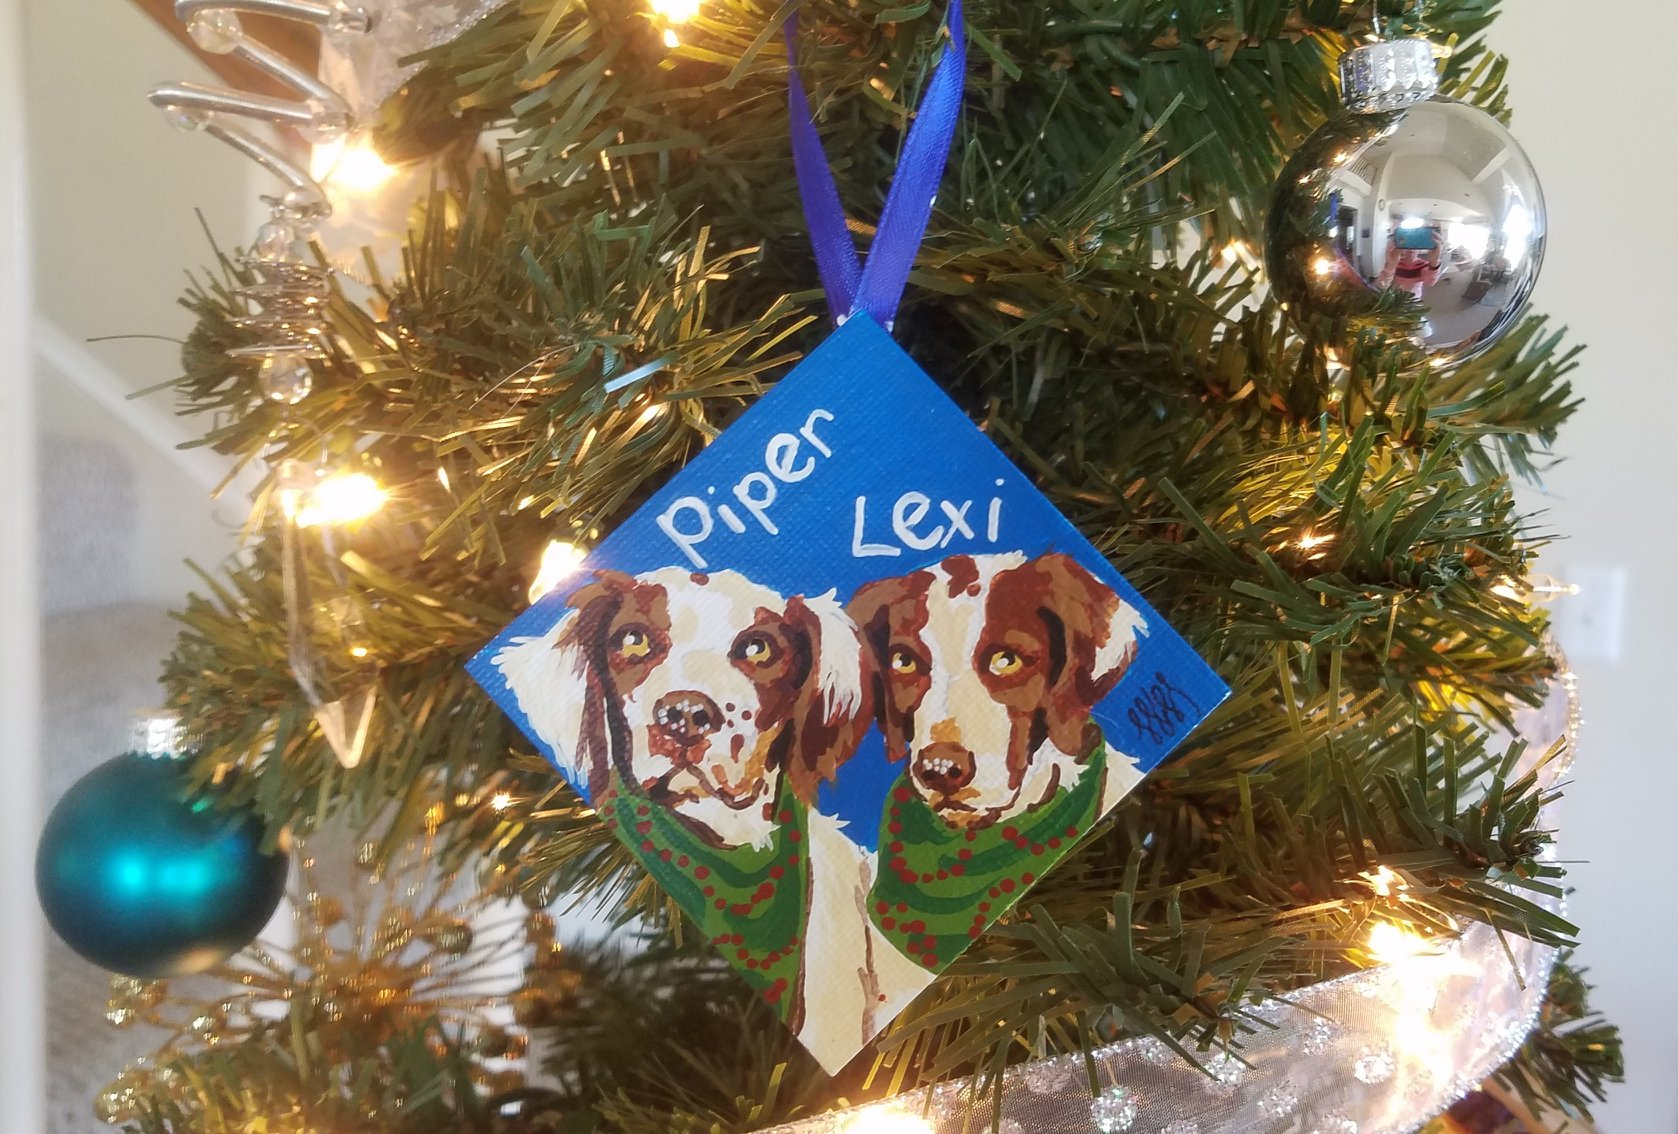 Piper/Lexi Ornament on Tree